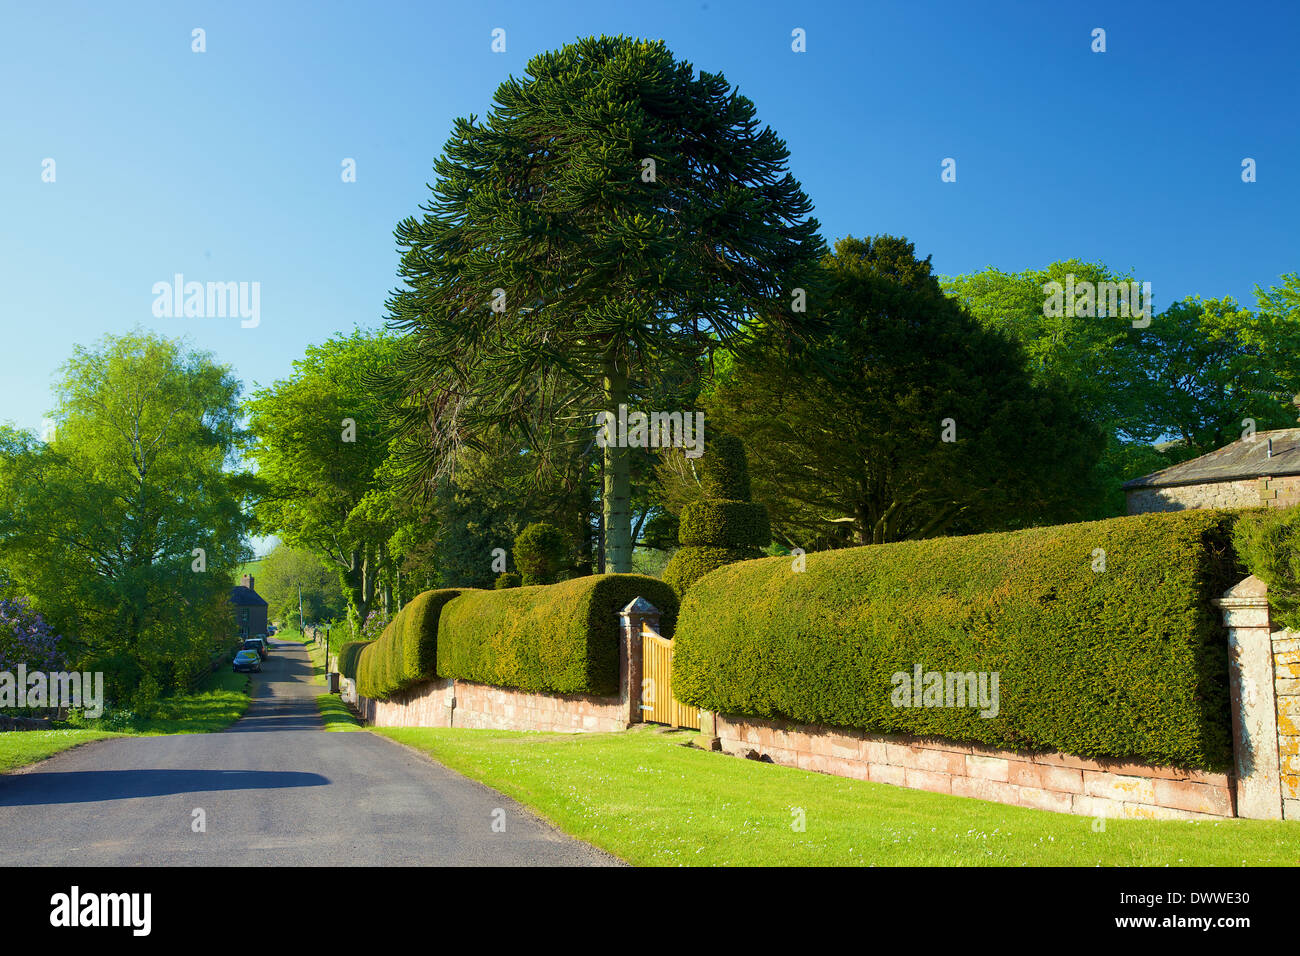 Yew hedge and Monkey Puzzle tree by rural road. Cumrew Cumbria England United Kingdom. - Stock Image